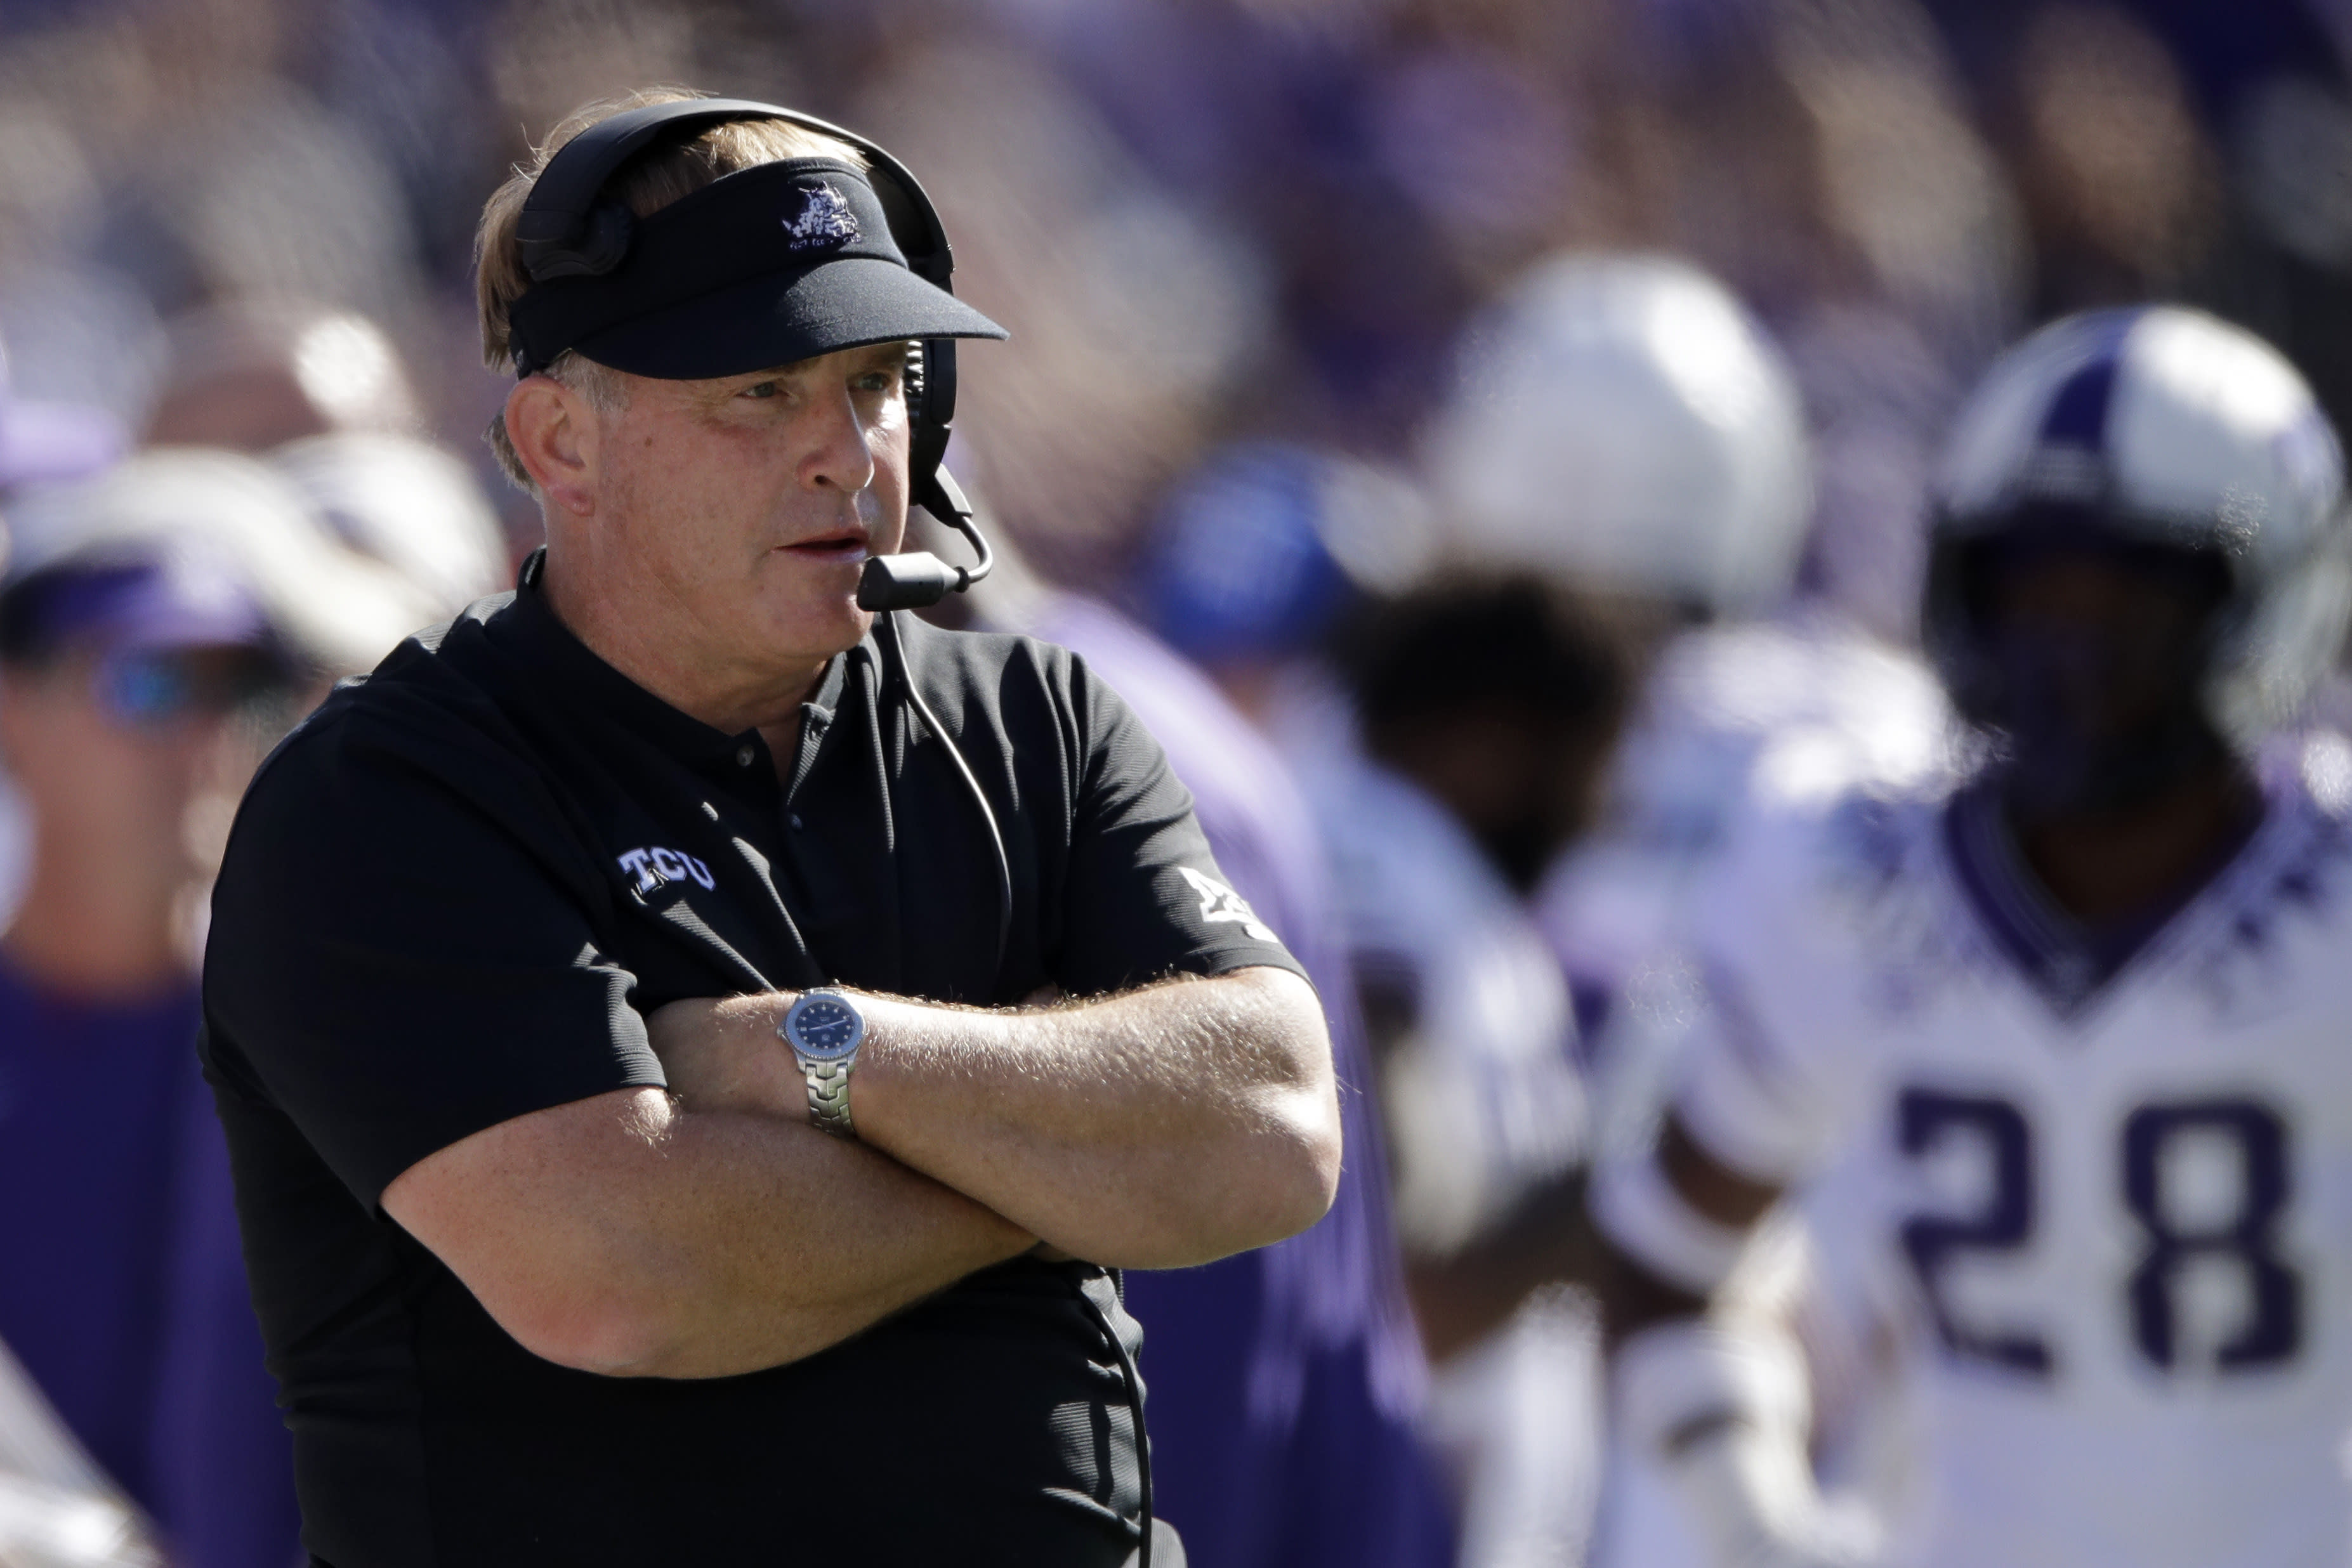 TCU's Patterson sorry for repeating racial slur to player